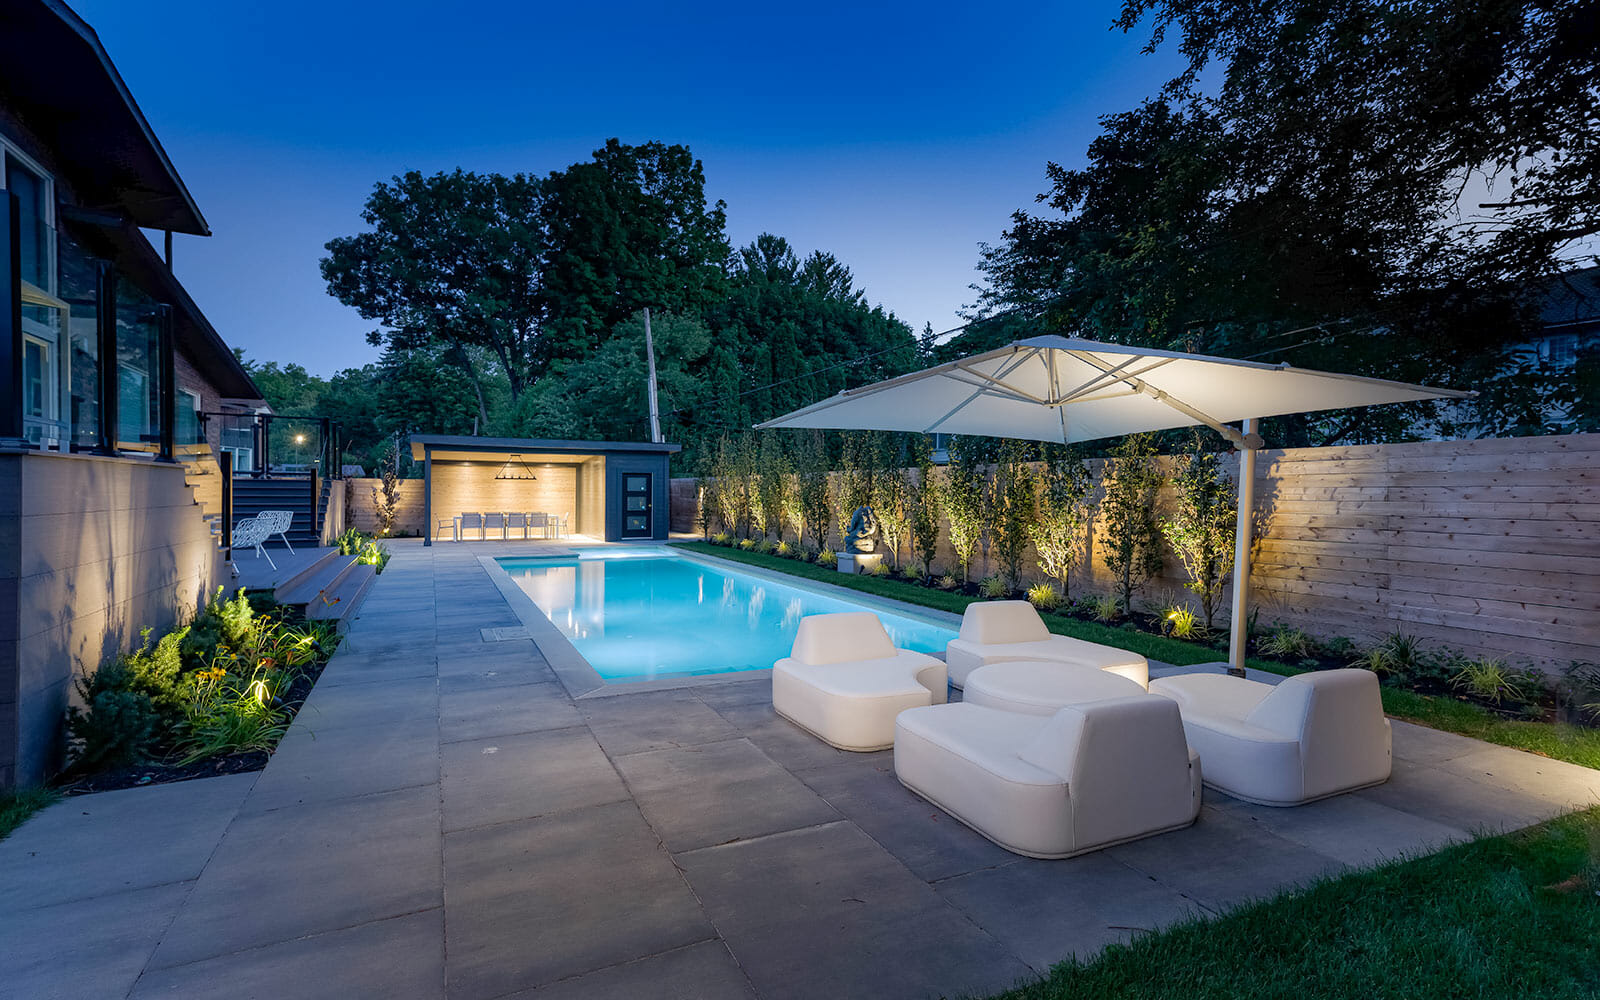 Complete Landscape Design with Concrete Pool Installation; Featuring Interlocking, Concrete Pool, Gazebo, PVC Decking & Privacy Fence by Toronto Landscaping Company.